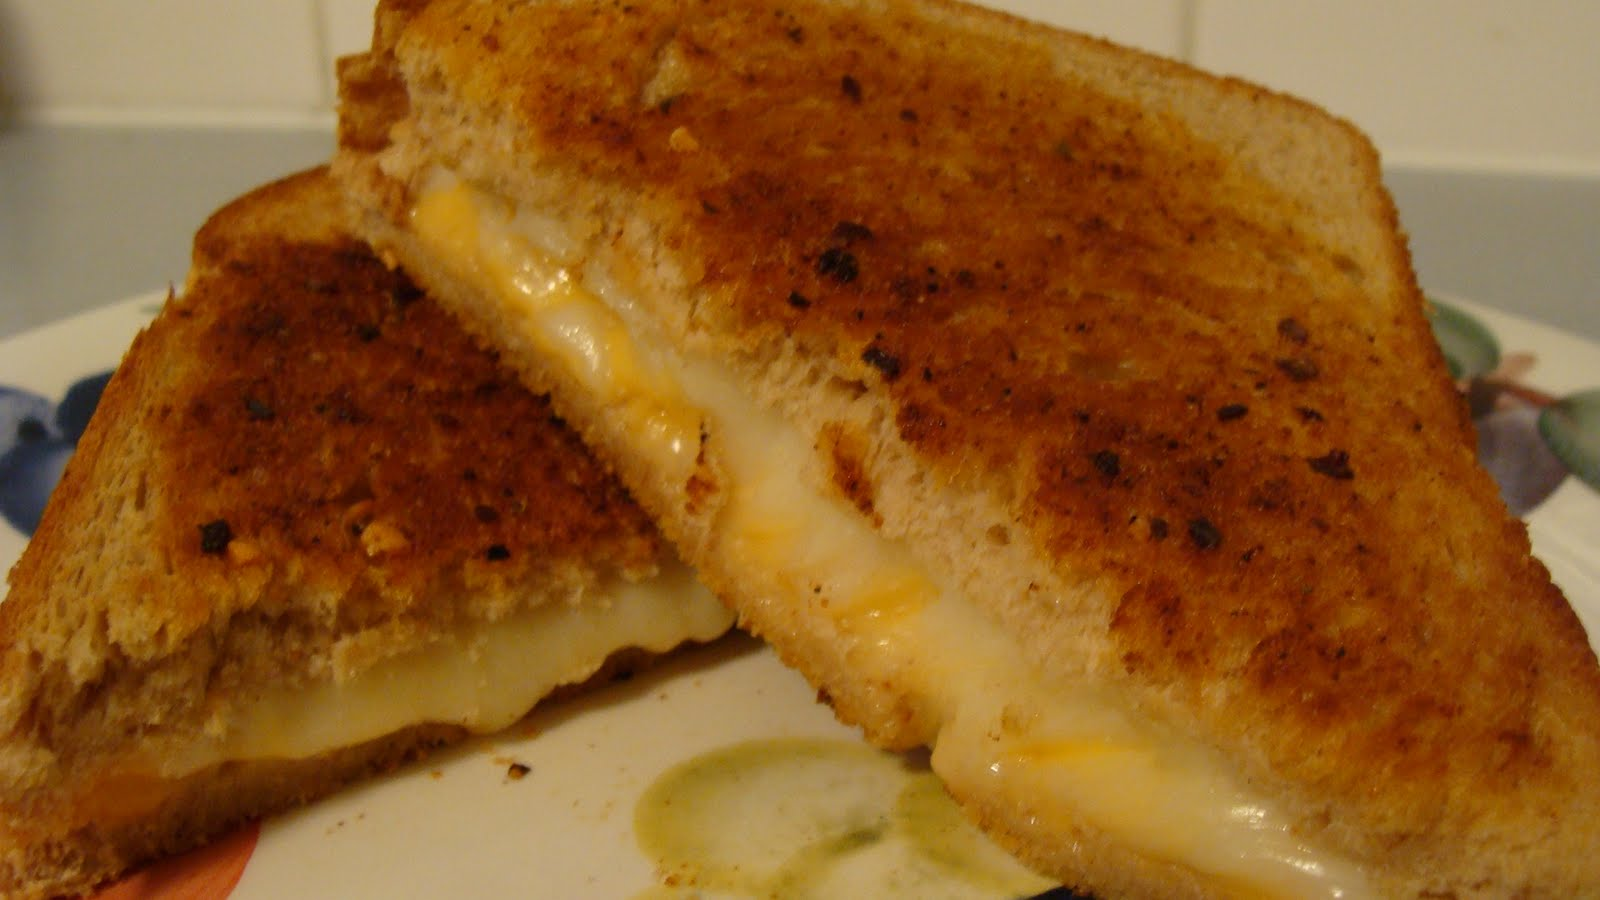 grilled cheese essay I've been on a bit of a cheese kick as of late mozzarella sticks, grilled cheese, and my personal favorite, mac 'n' cheese, have been on the menu more times than is probably healthy.